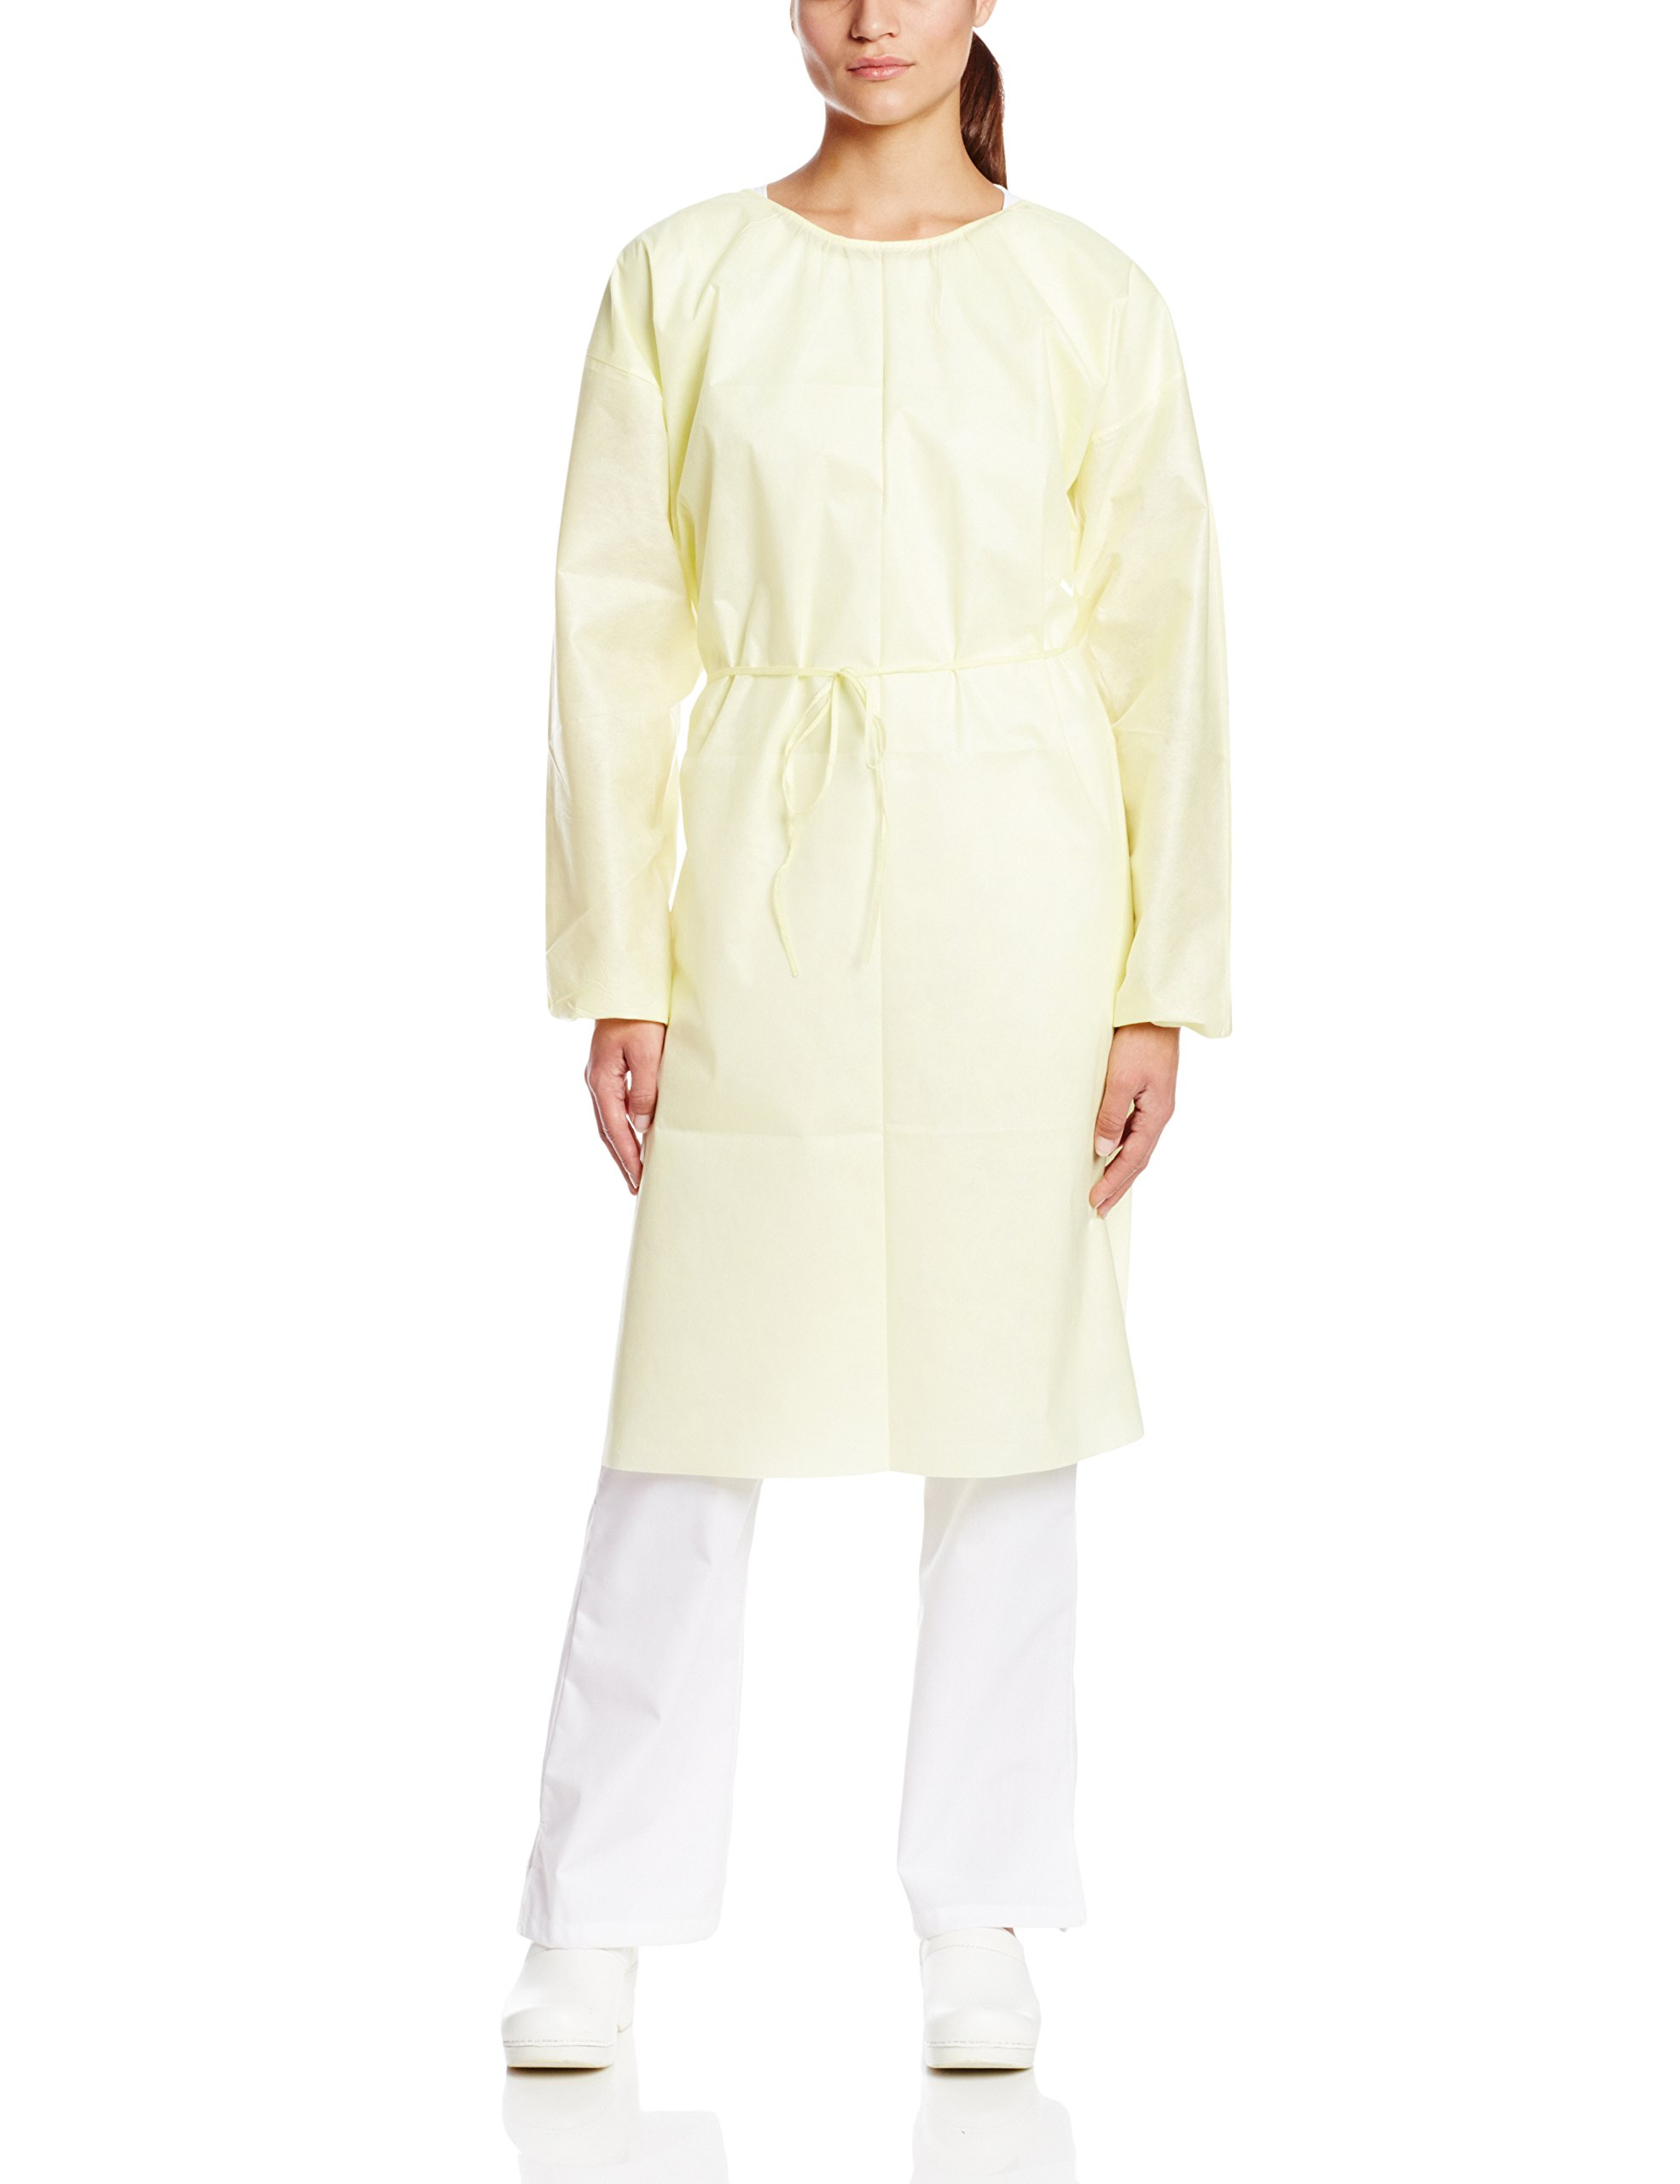 ValuMax 3380E-Y Disposable SMS Cover Gown, Fluid Resistant, Tie Back, Elastic Cuffs, Yellow, Pack of 10 Regular Size Fitting Most. by Valumax (Image #1)